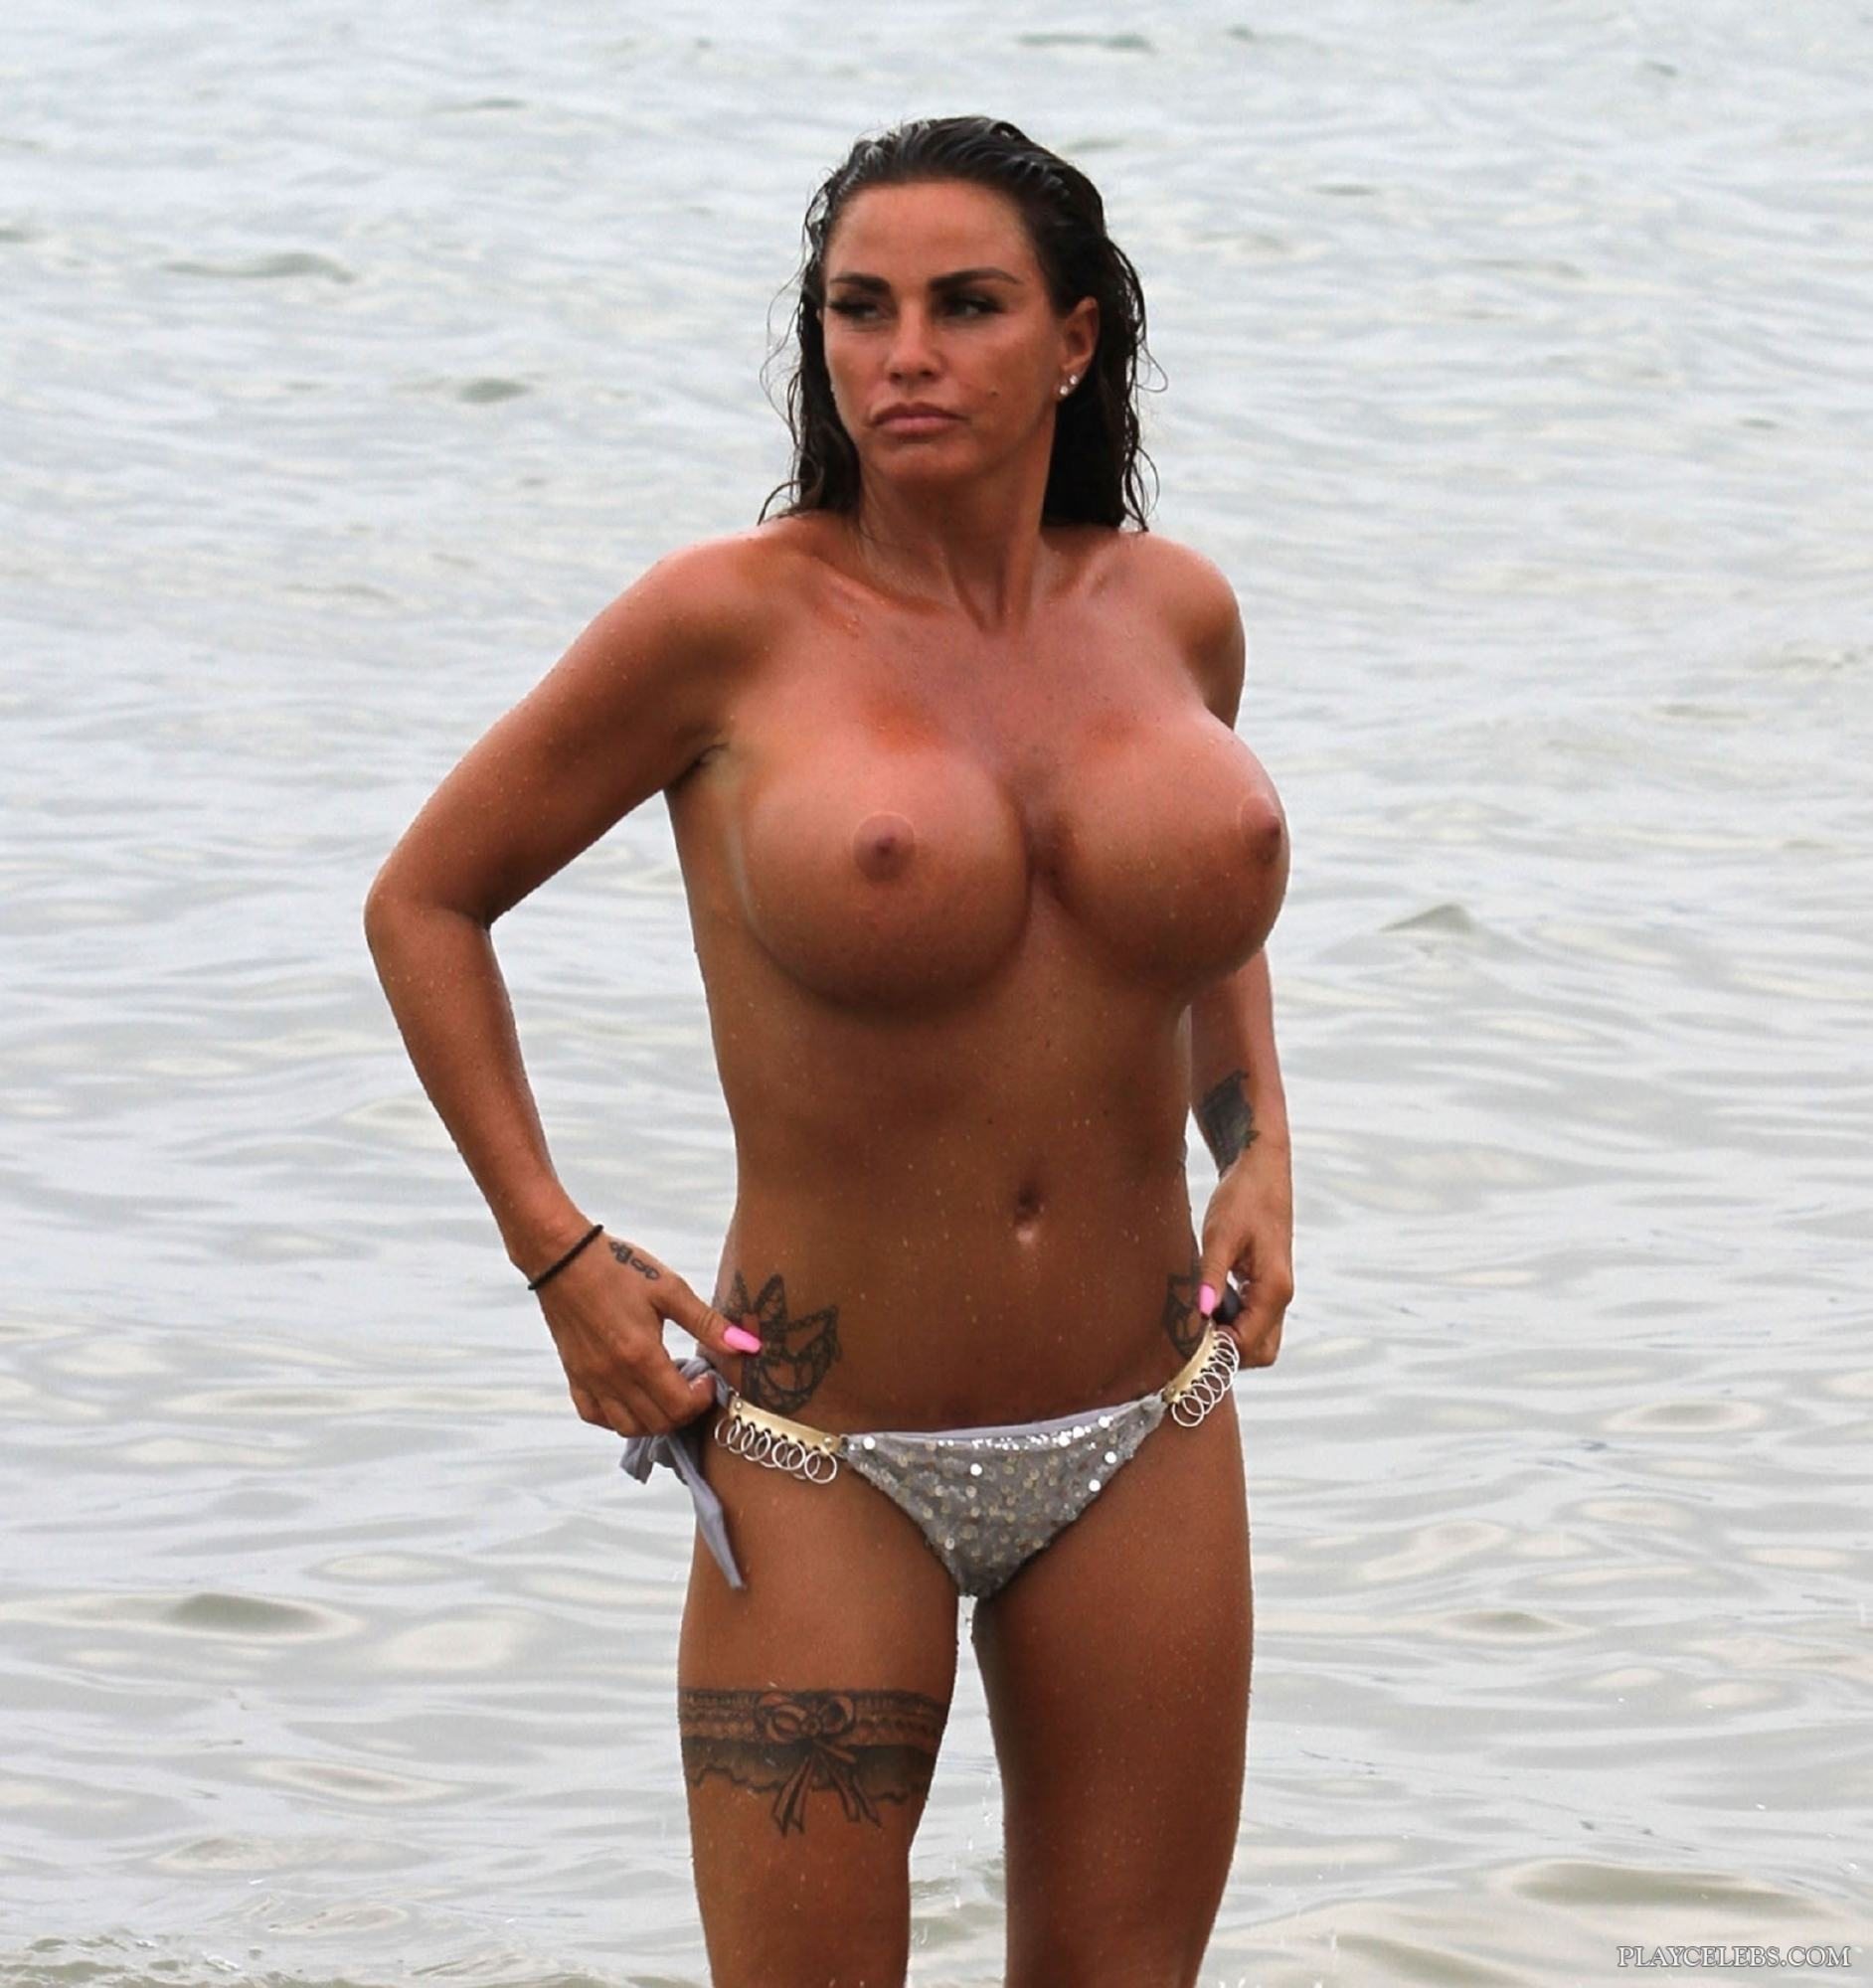 Katie Price Showing Her Massive Tanned Boobs